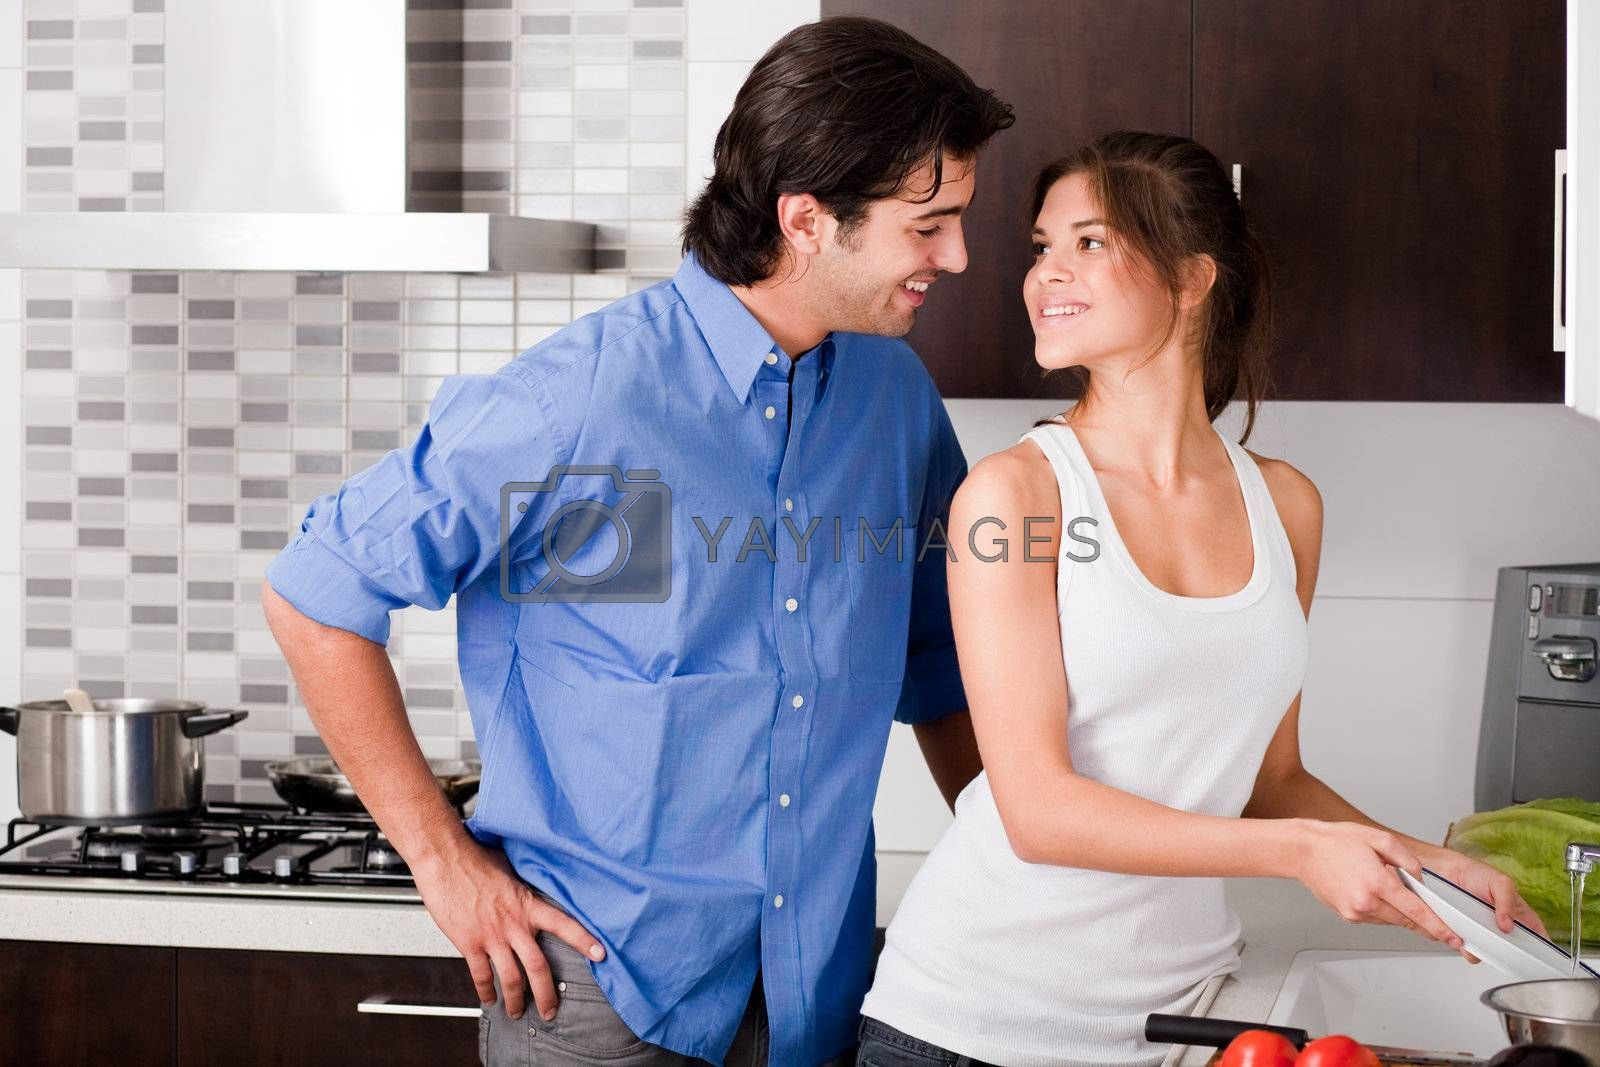 smiling young couple enjoying their love in kitchen